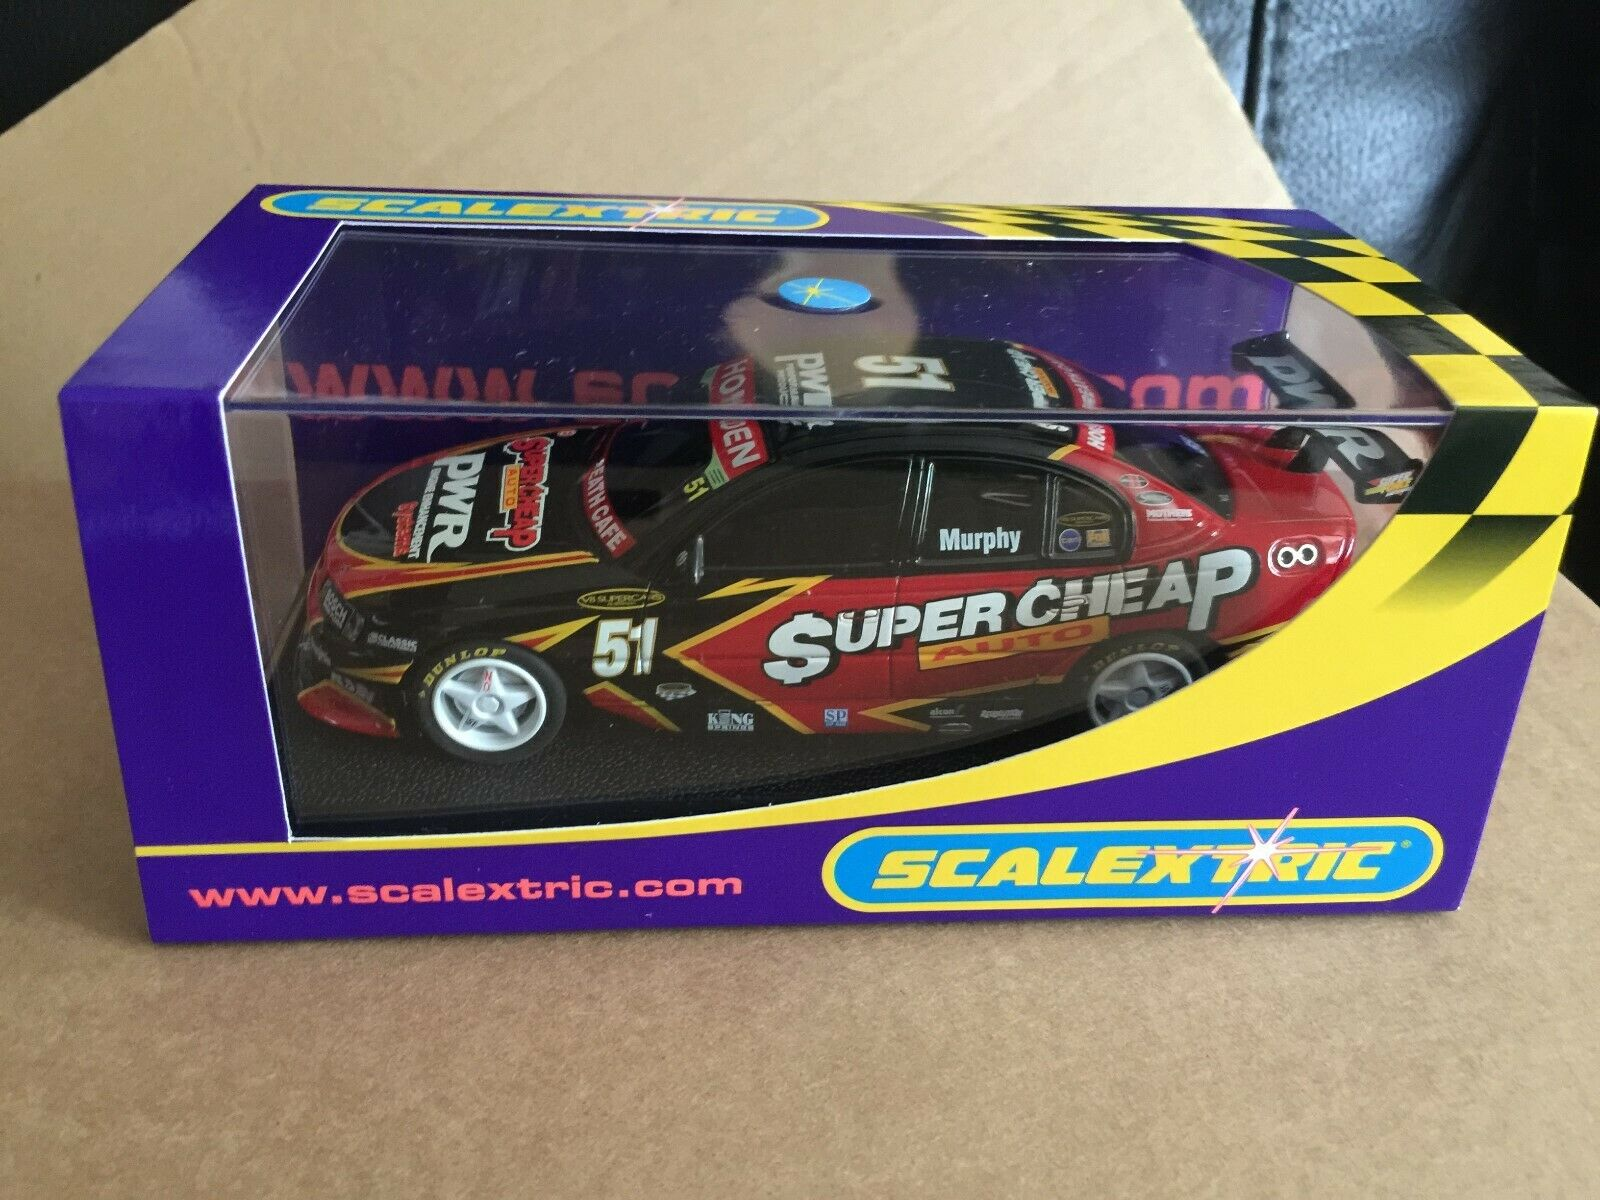 RARE SCALEXTRIC HOLDEN COMMODORE VY SUPERCHEAP NO 51 REF C2692 L@@K